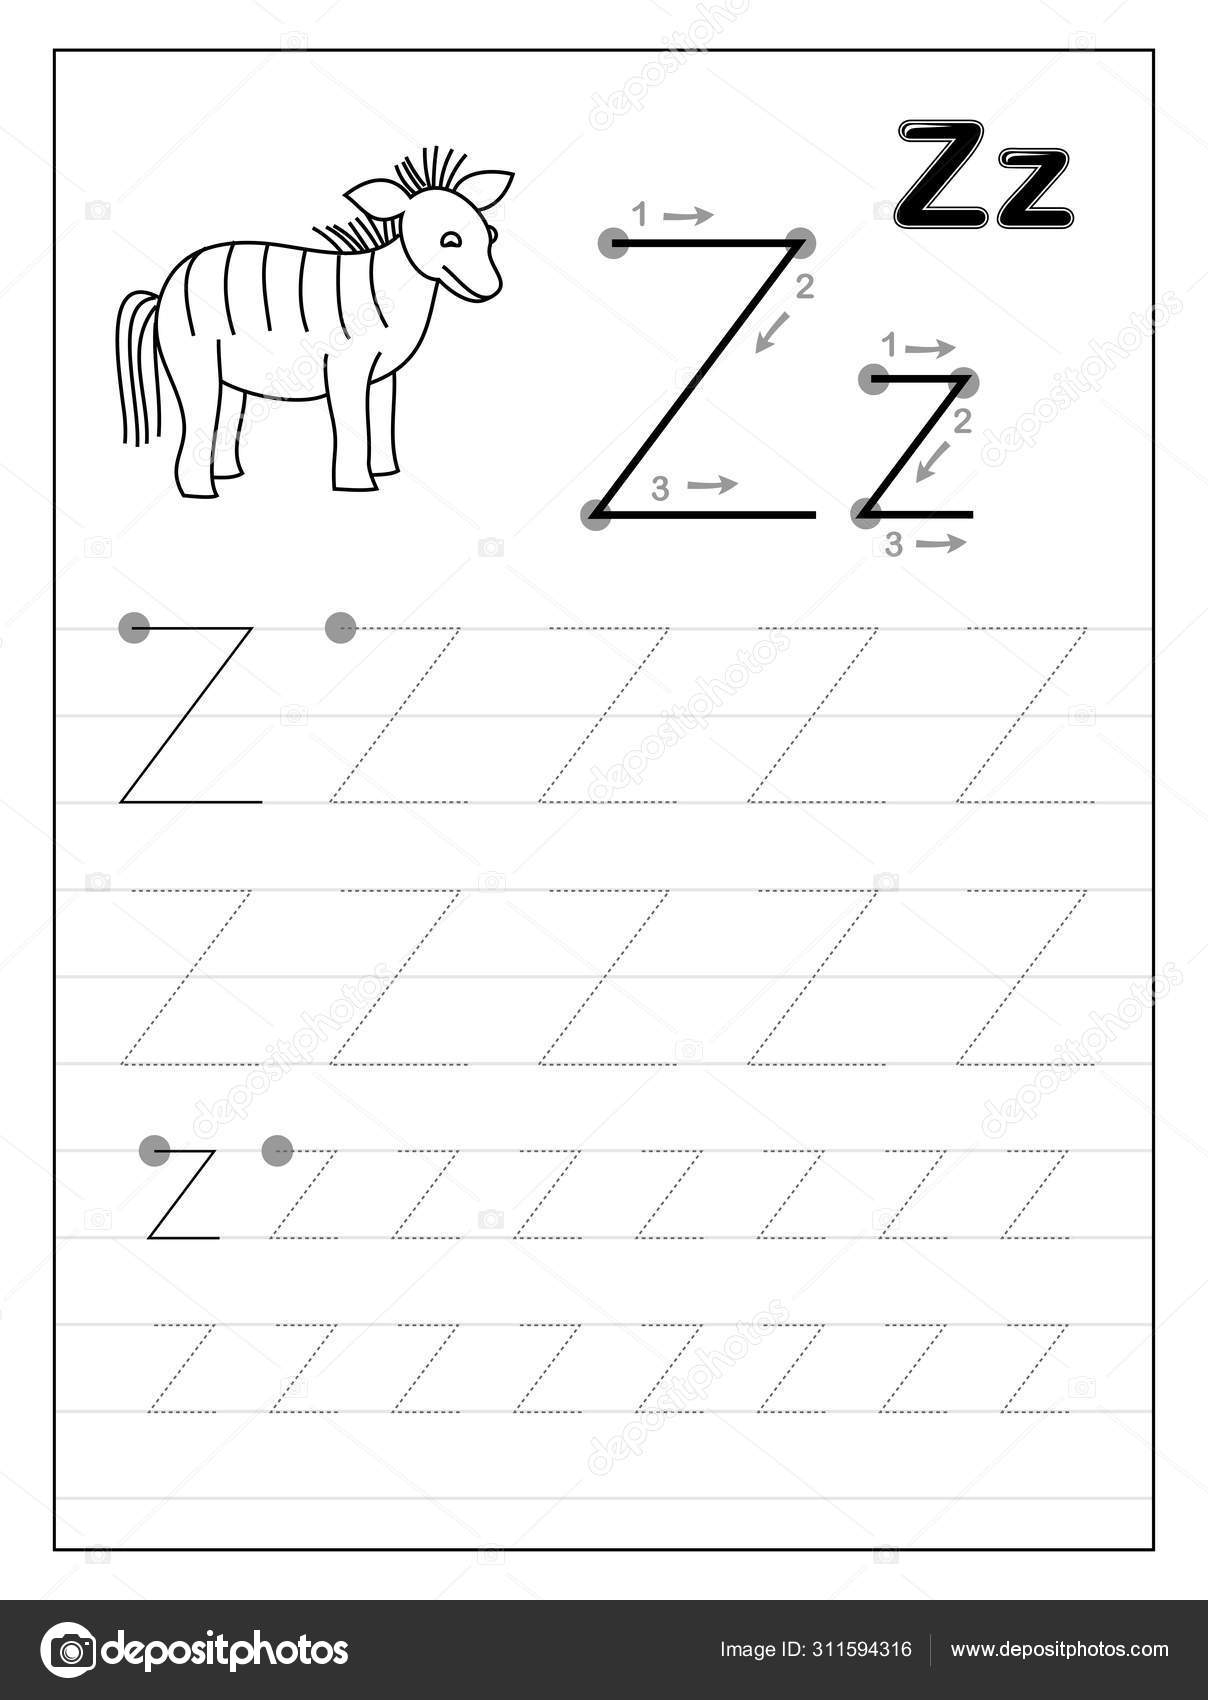 Tracing Alphabet Letter Z. Black And White Educational Pages On Line For  Kids. Printable Worksheet For Children Textbook. Developing Skills Of pertaining to Letter Zz Worksheets